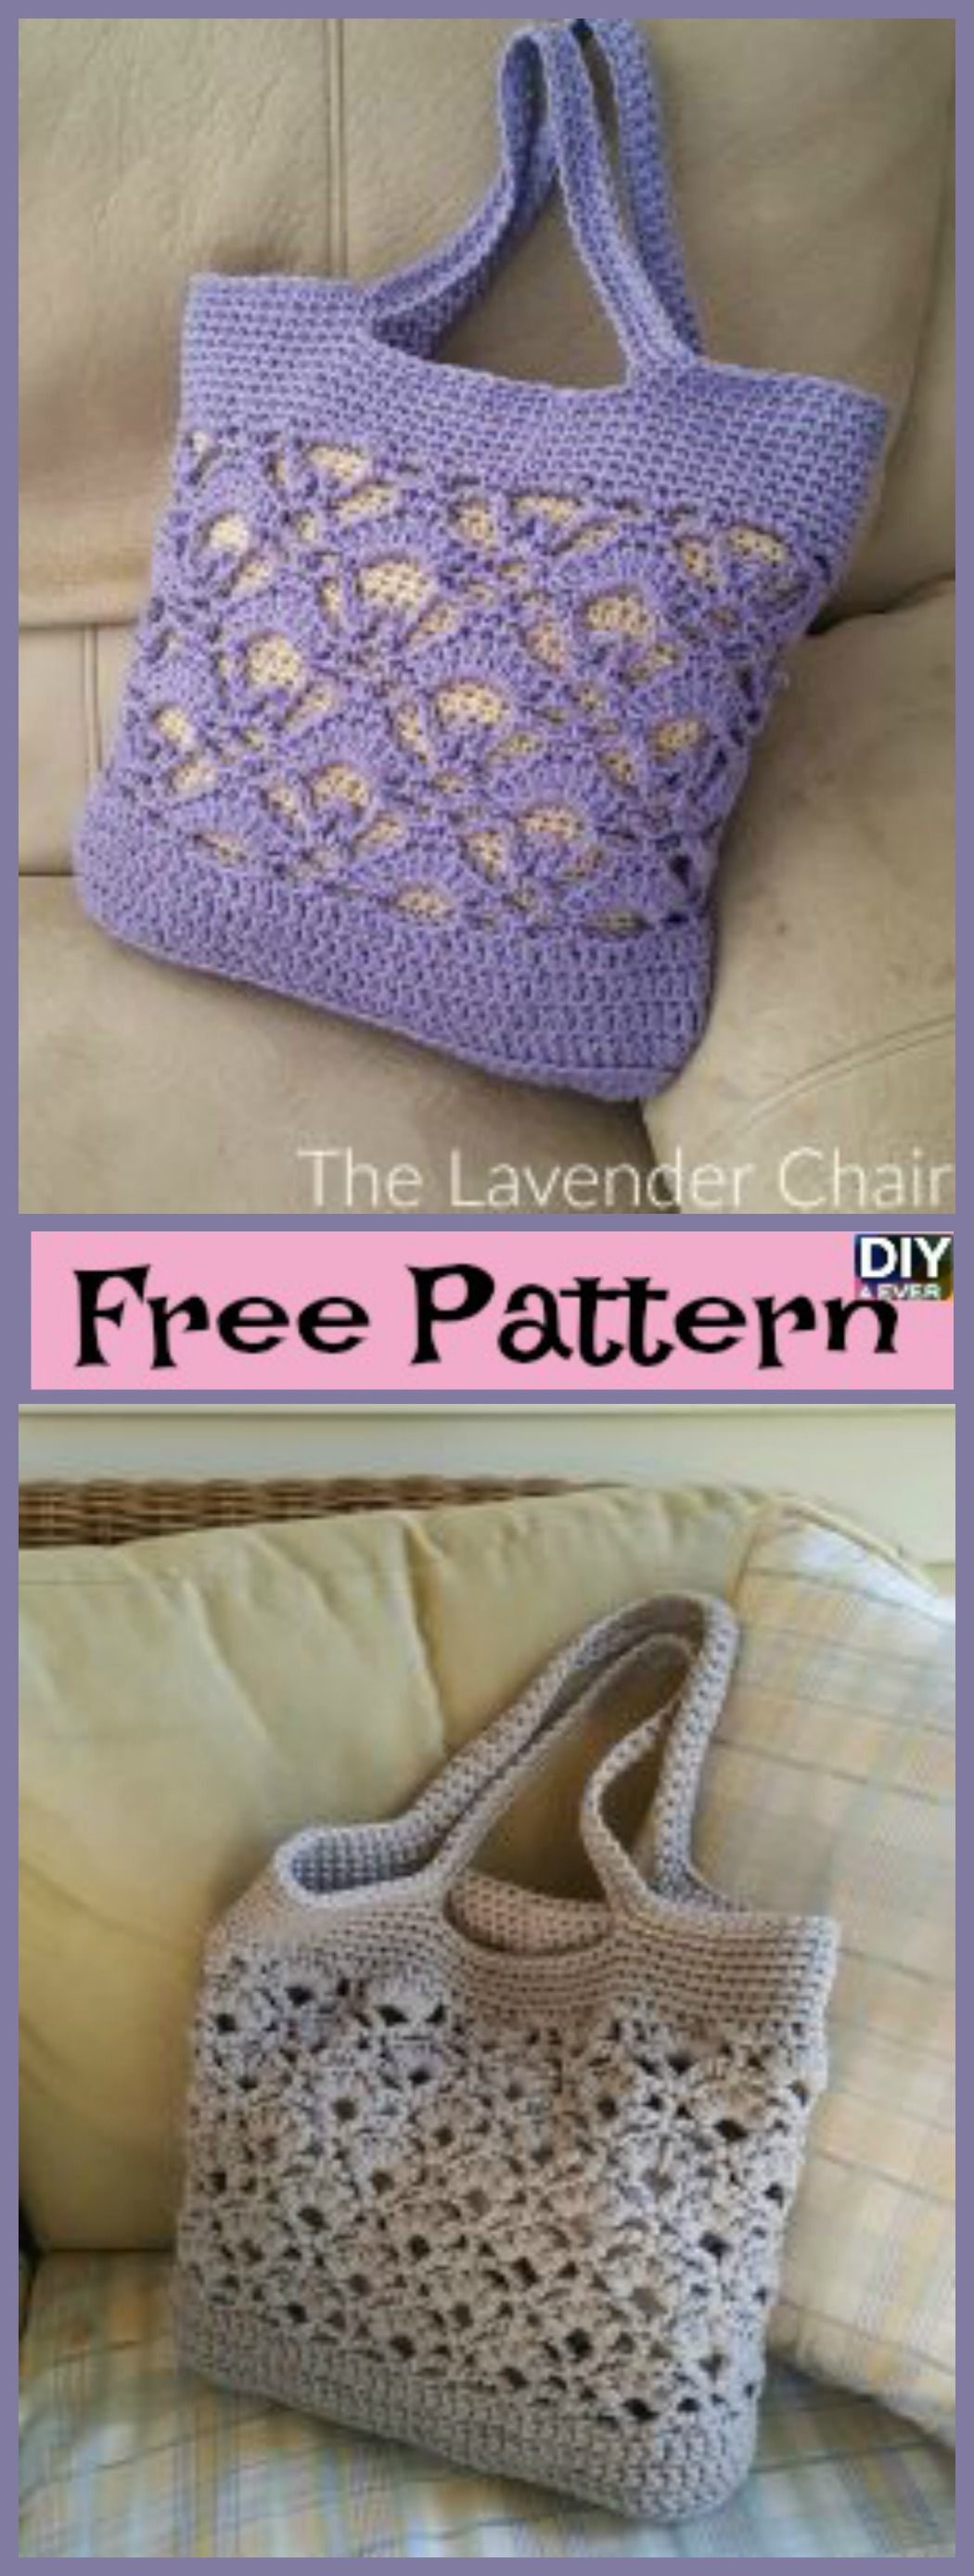 Creative Crochet Tote Bags - Free Pattern - DIY 4 EVER